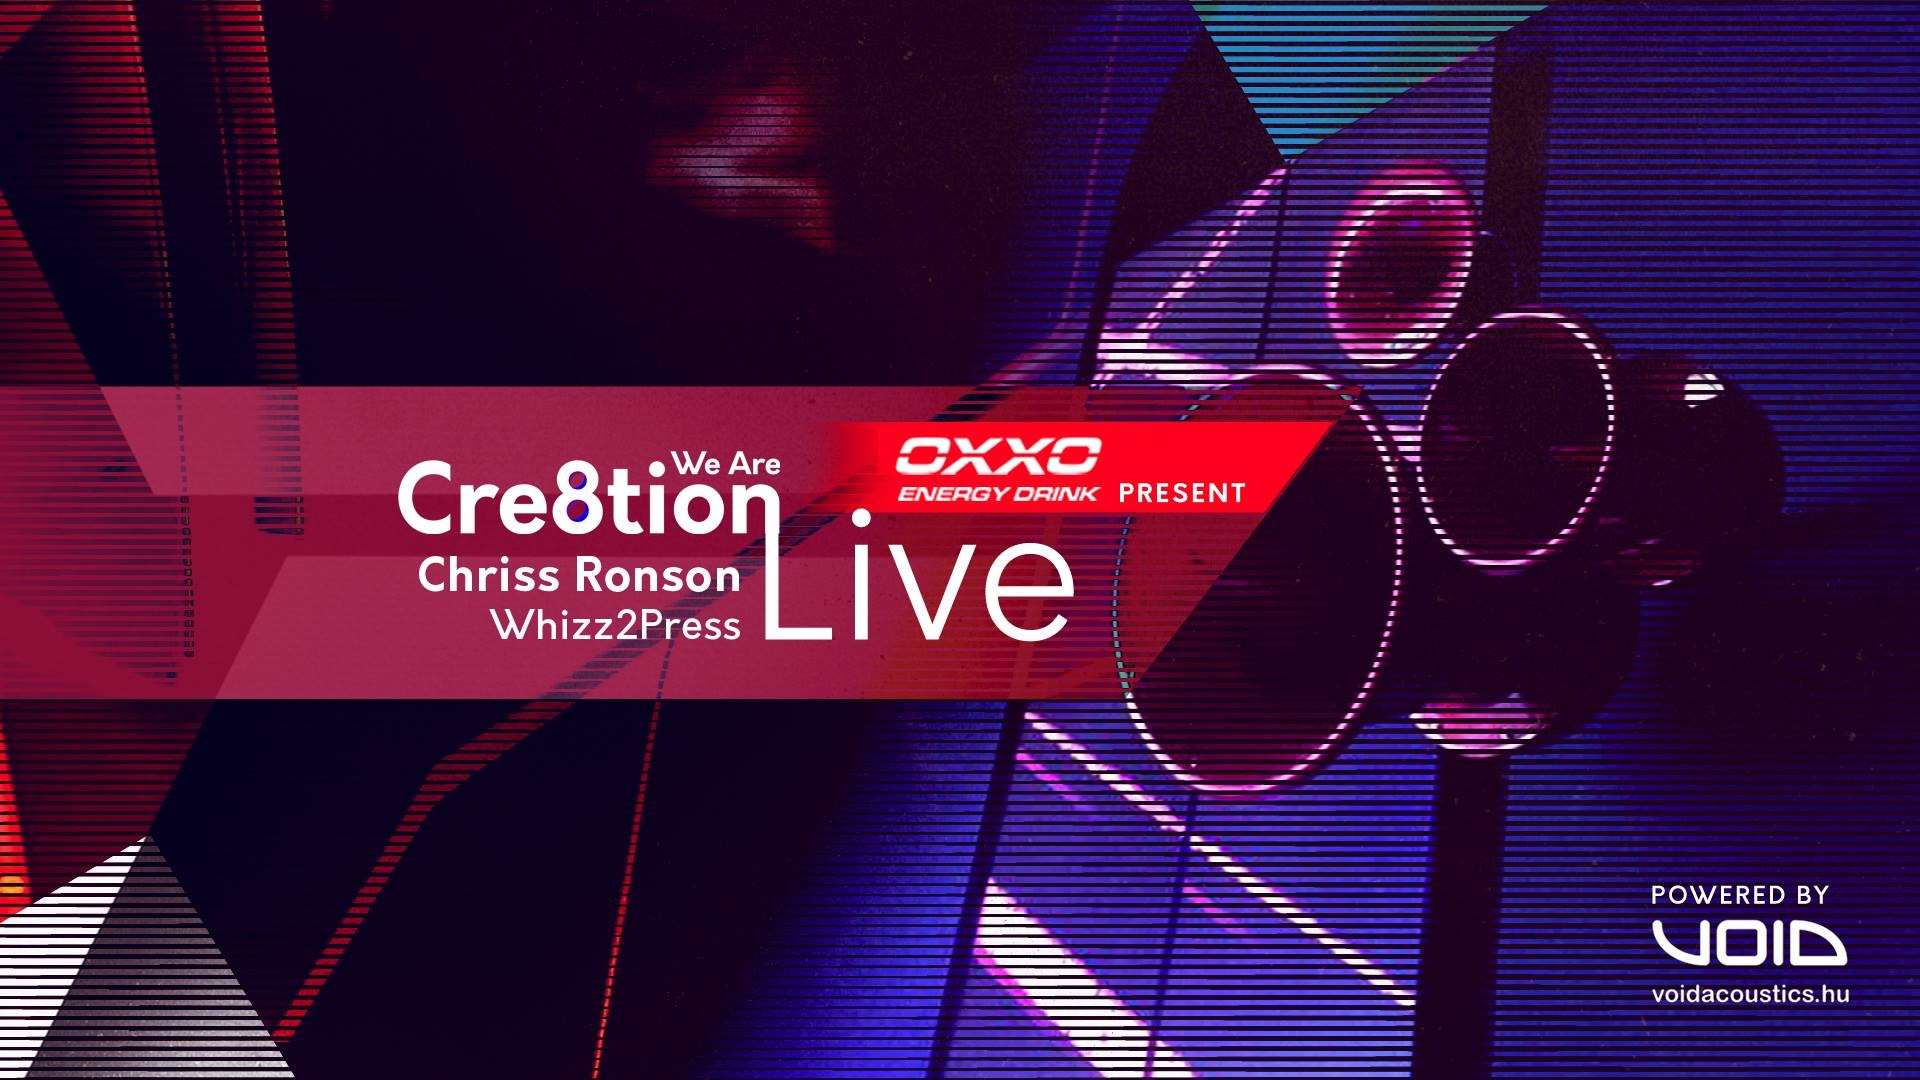 OXXO presents We Are Cre8tion ( live stream 003 )